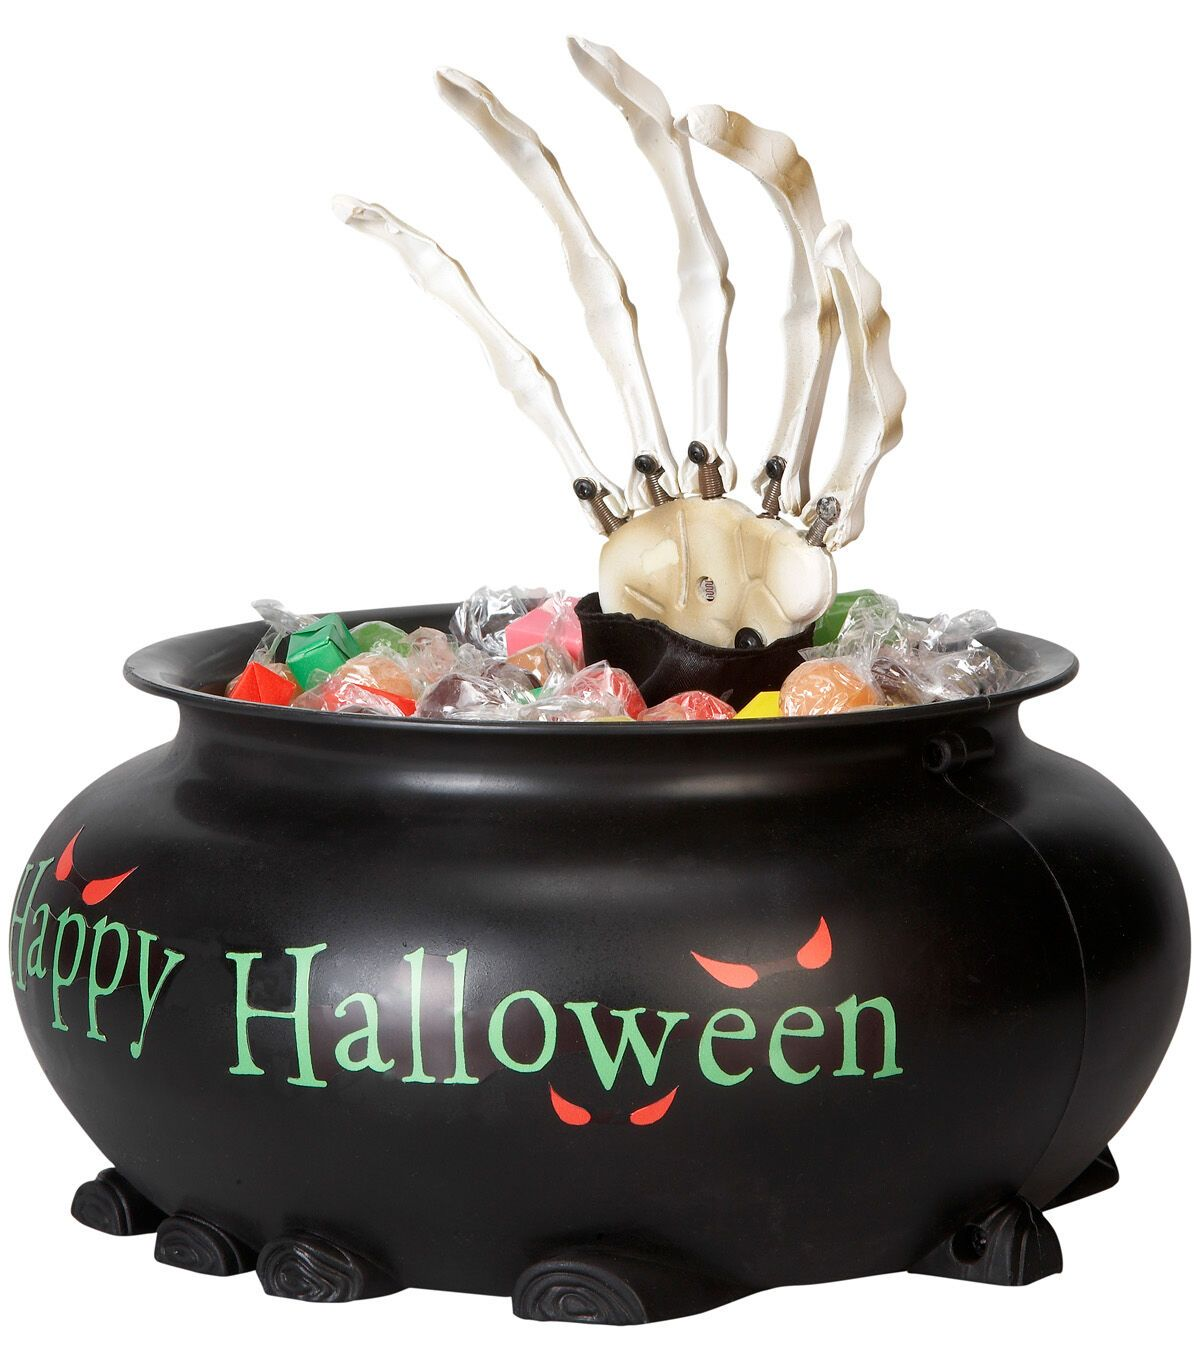 Maker's Halloween Animated Candy Bowl with Skeleton Hand